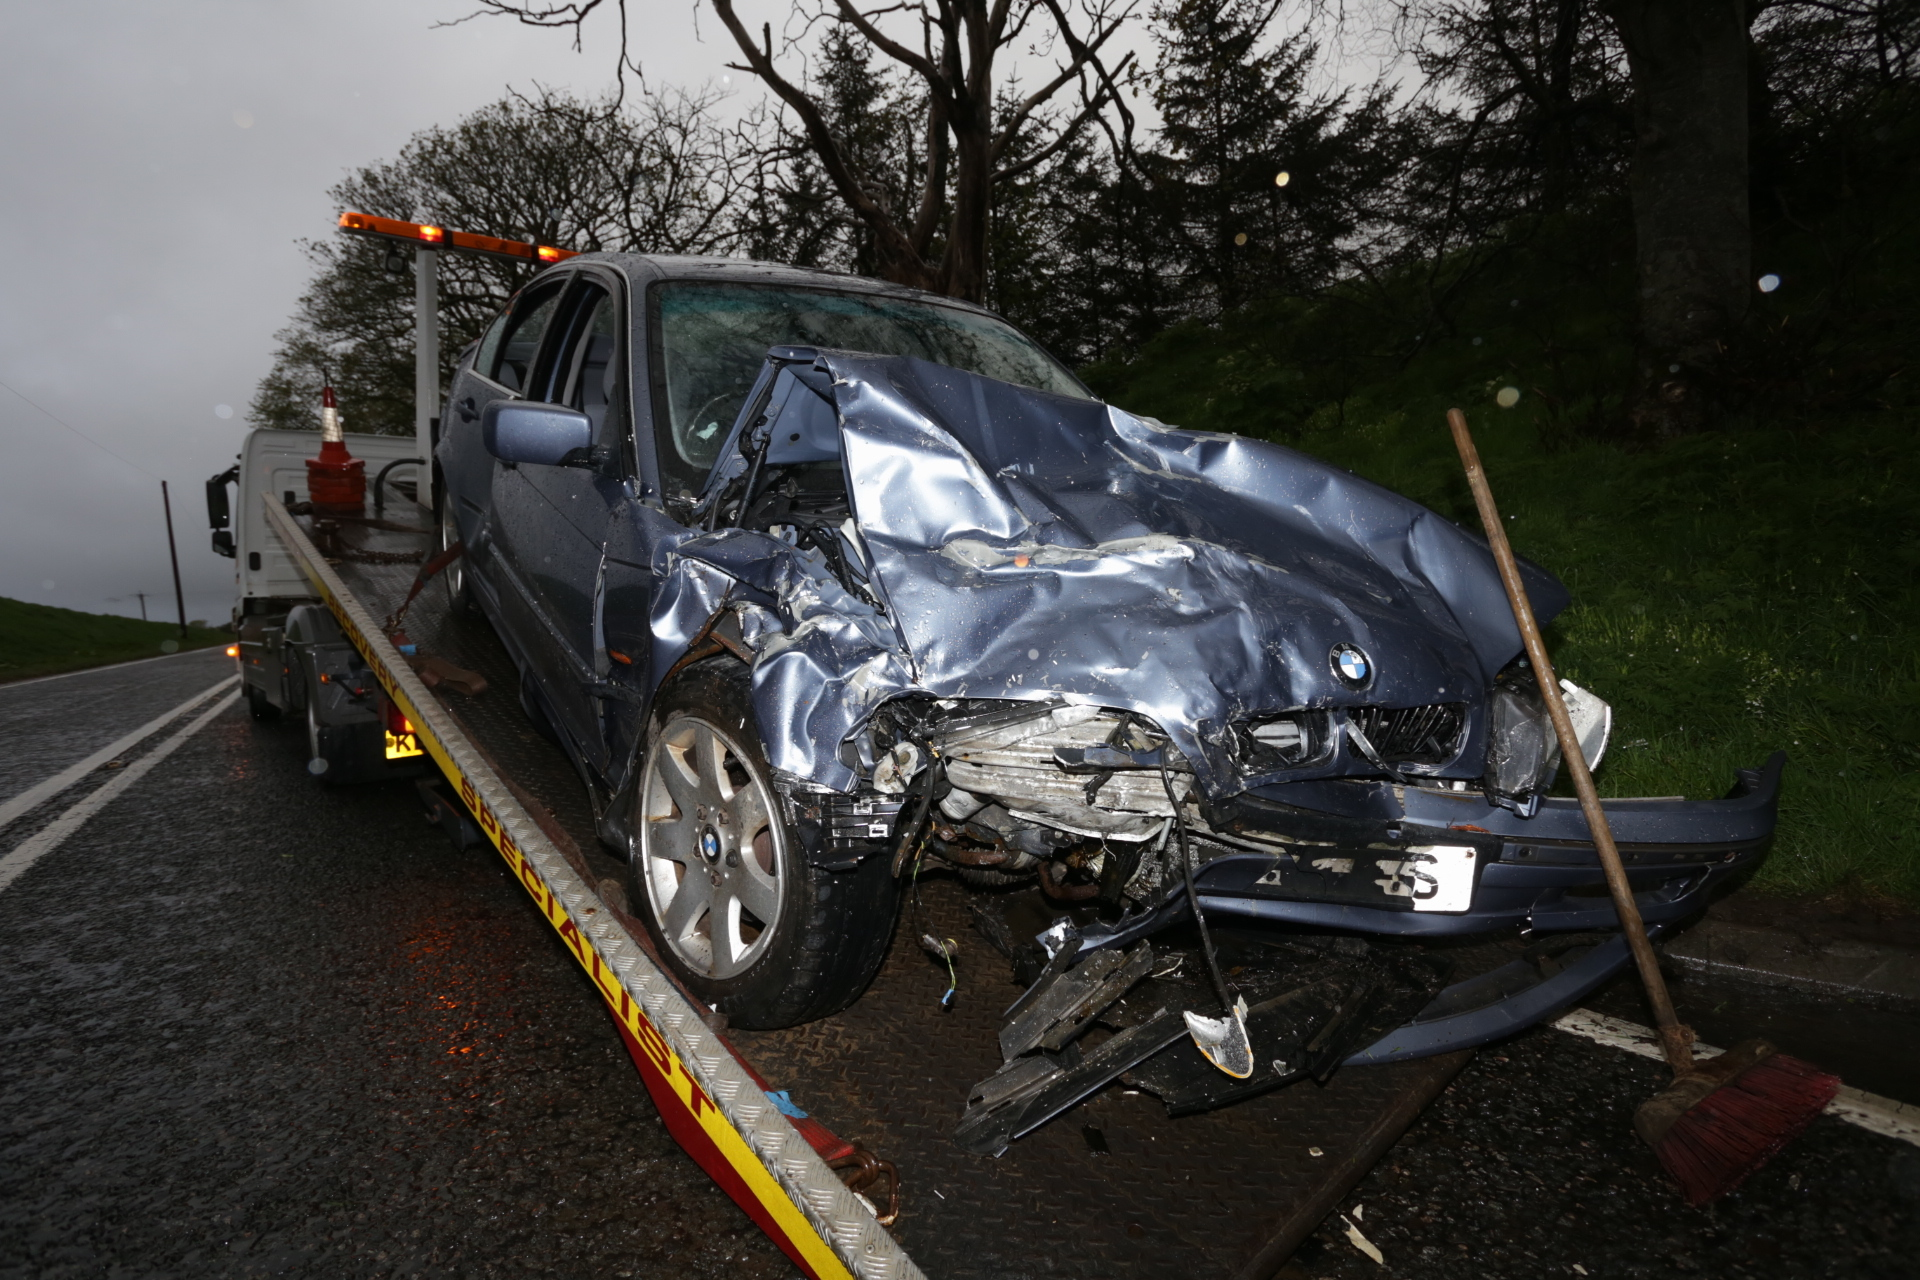 The A947 Aberdeen to Banff route has been the scene of a series of serious car crashes in recent years